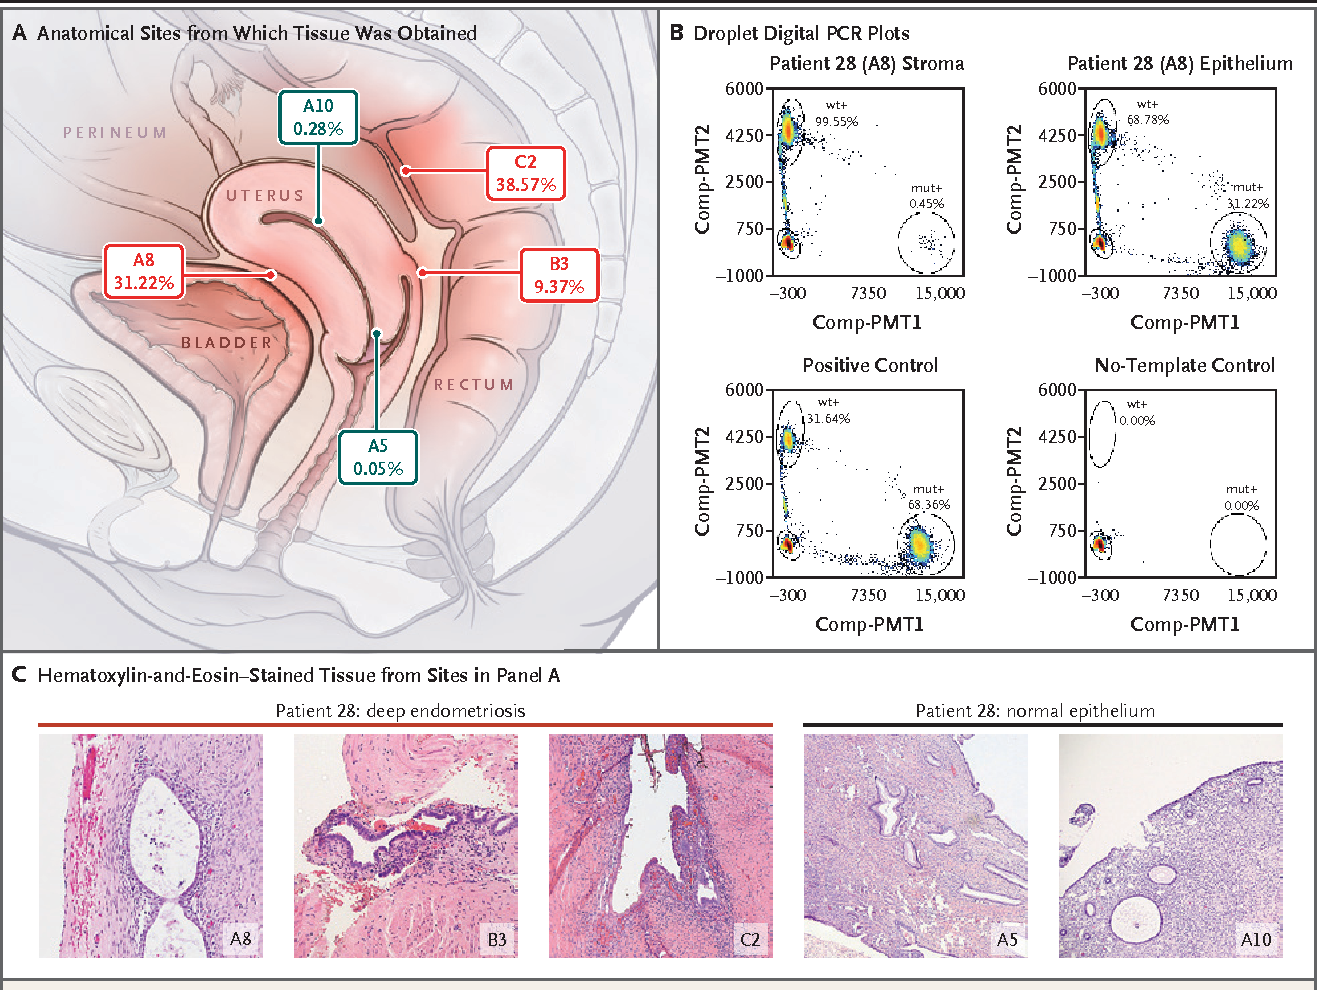 Figure 4. Co-Occurring and Anatomically Distinct Deep Infiltrating Endometriosis Lesions That Harbor Identical KRAS Mutations.